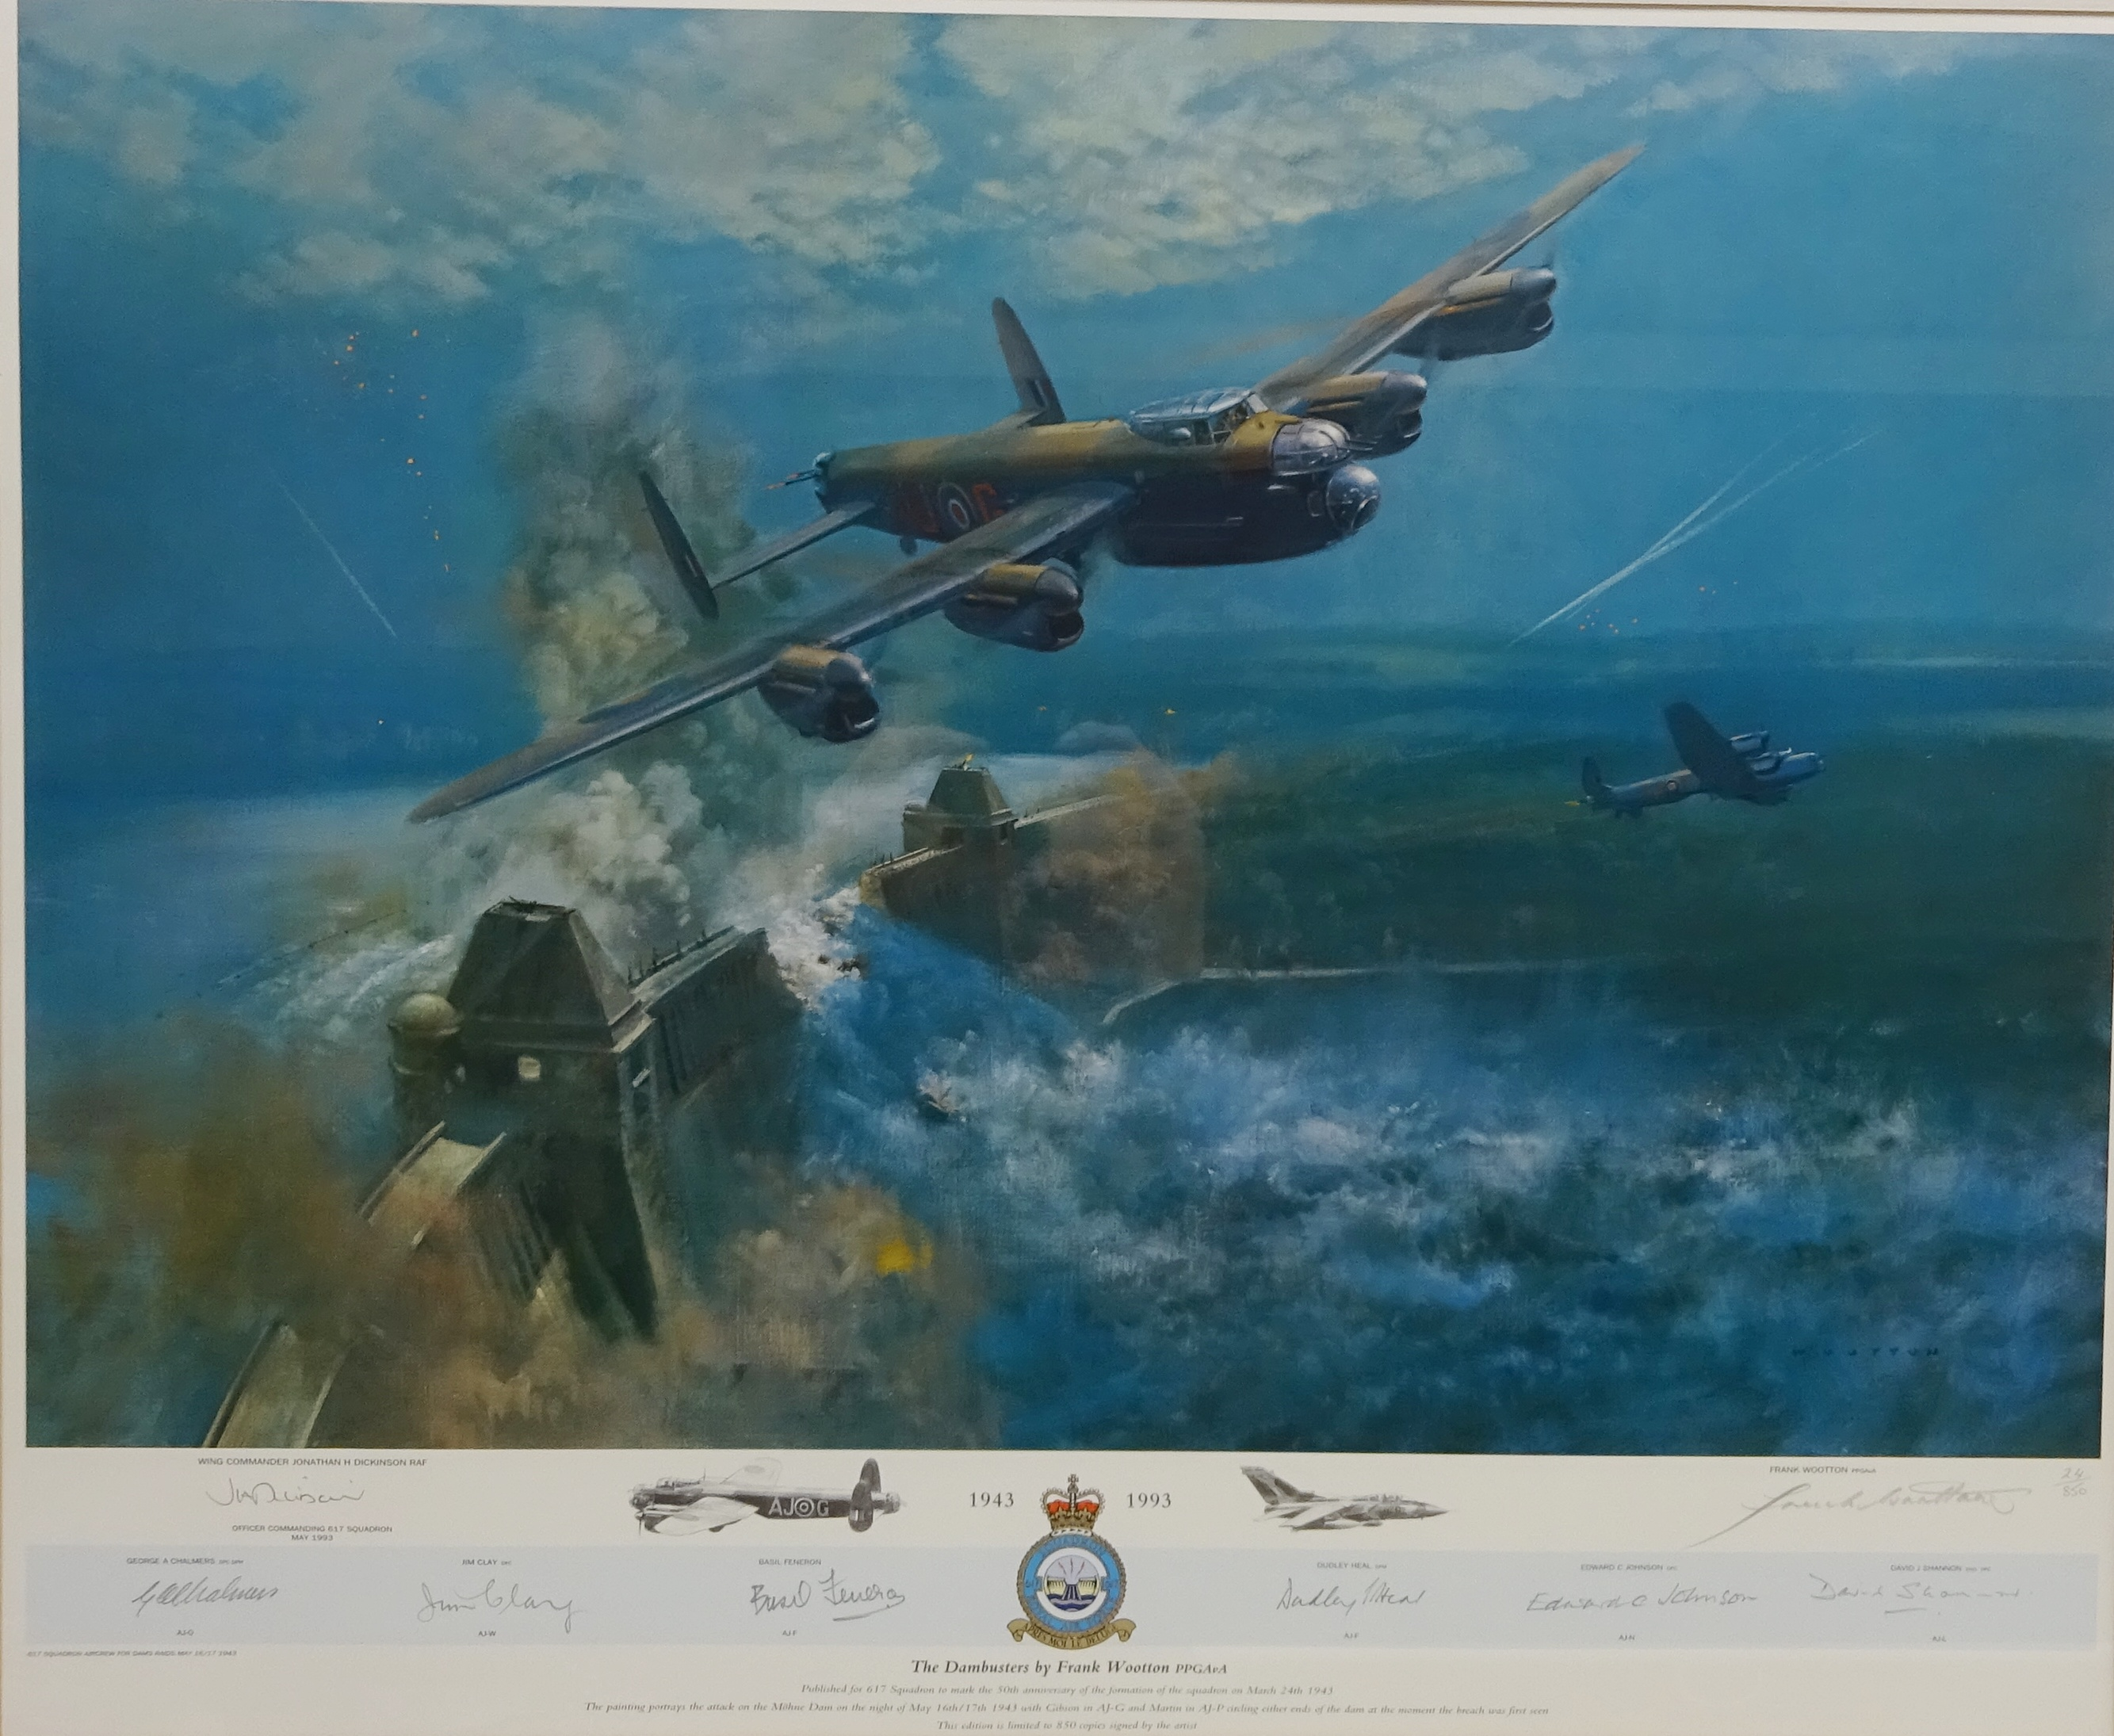 Dambusters-Frank Wootton